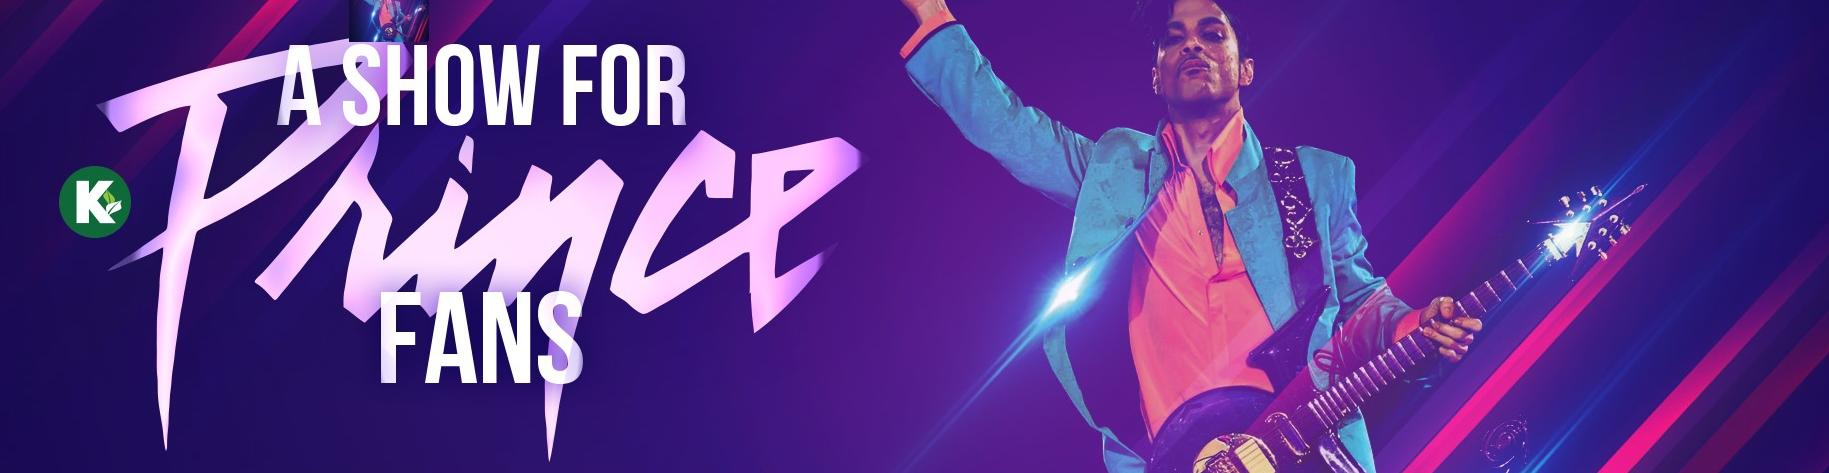 A Show for Prince Fans